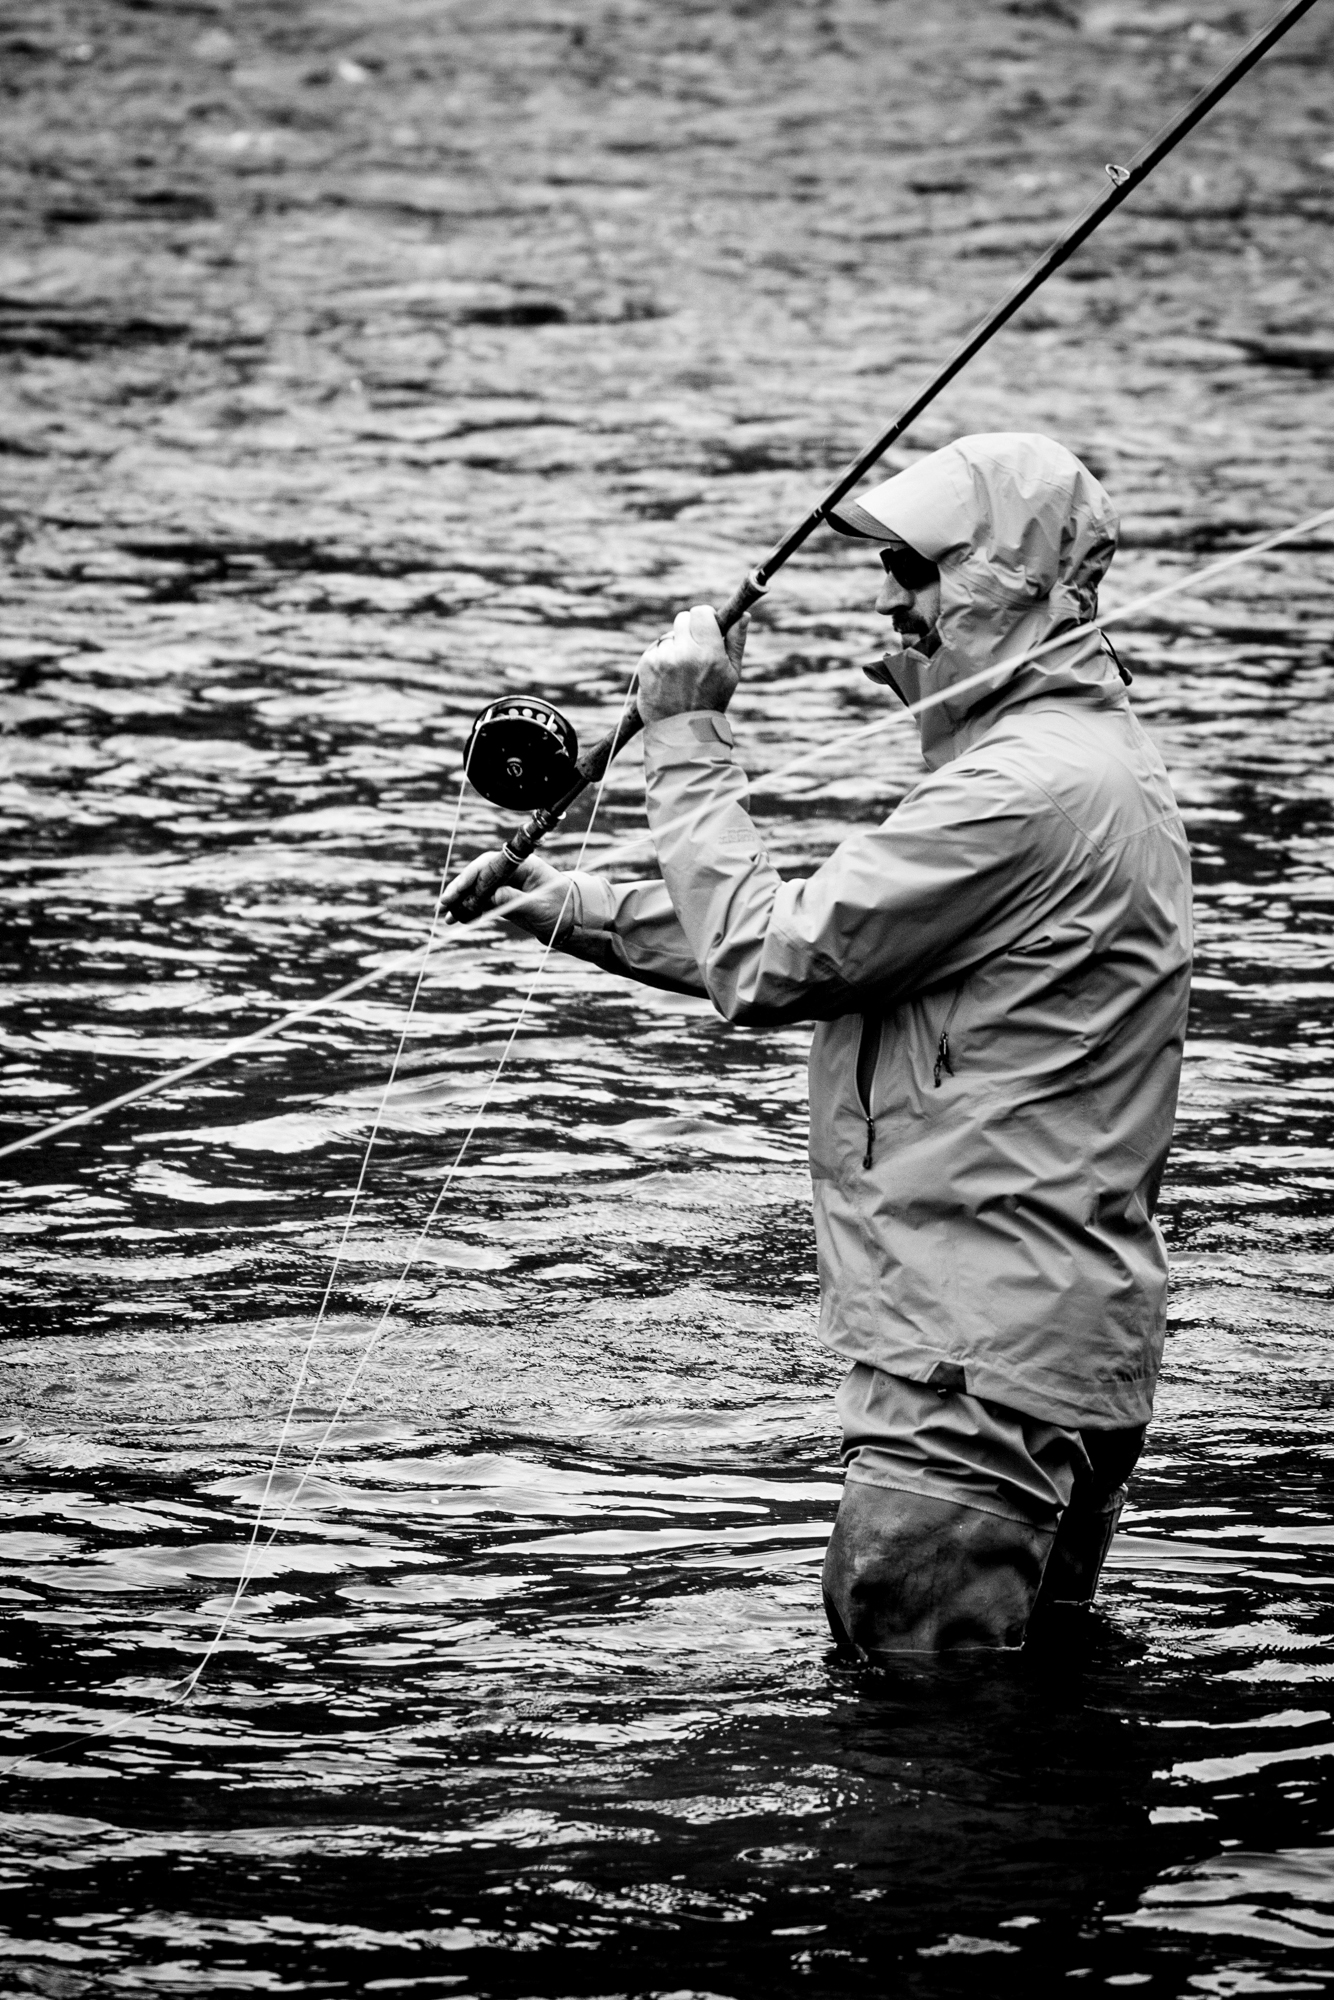 Troy makes some spey casts as the skies start to drizzle a little rain on us.  It's looking like the day is winding down, the coffee is wearing off and the hike out is long.